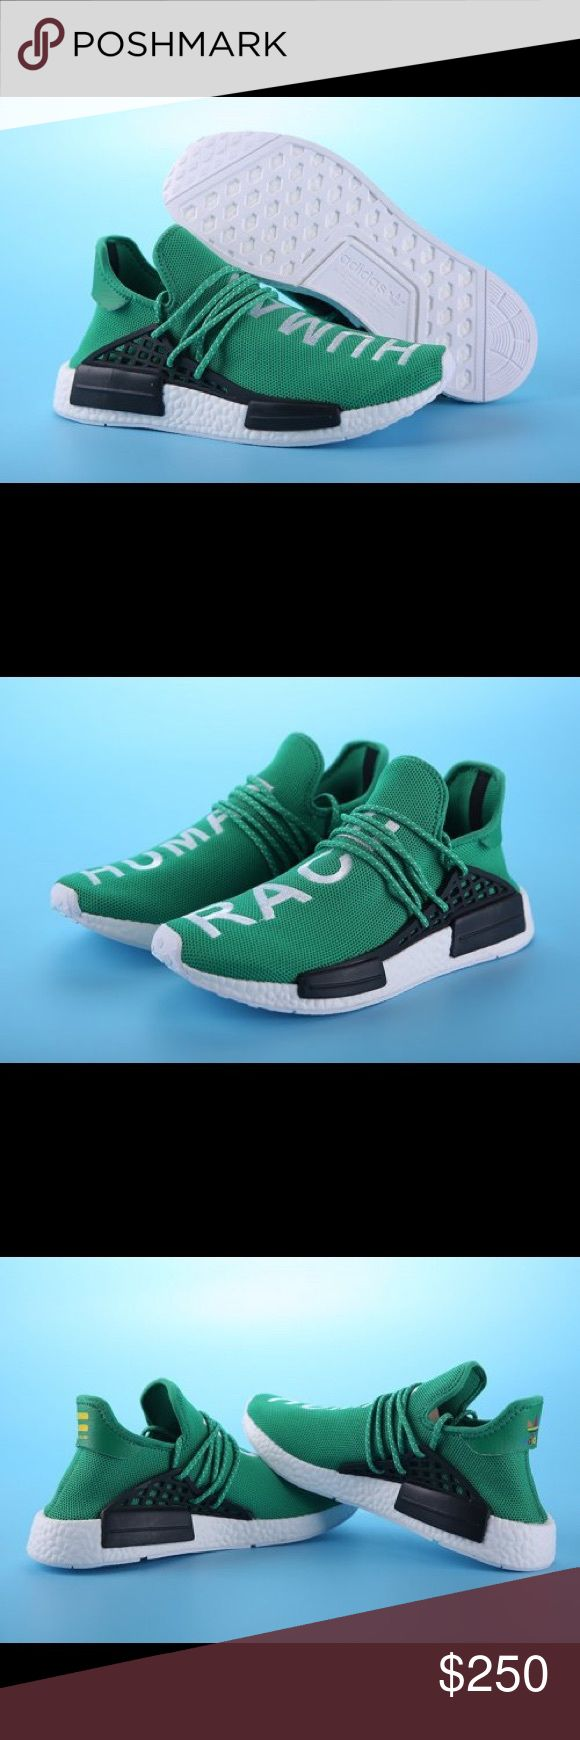 PW HUMAN RACE NMD (Green) Men's Size Best Replicas To Date!  Get Them While They Last...  Which Won't Be Long.  Once They Are Gone, They're Gone!  Shipping Information: Item is shipped to Buyer's Confirmed Address within 1-3 business days of cleared payment and given tracking number, if you want these urgently, Please DO NOT buy it!   Estimated time of delivery: 6-10 business days adidas Shoes Athletic Shoes